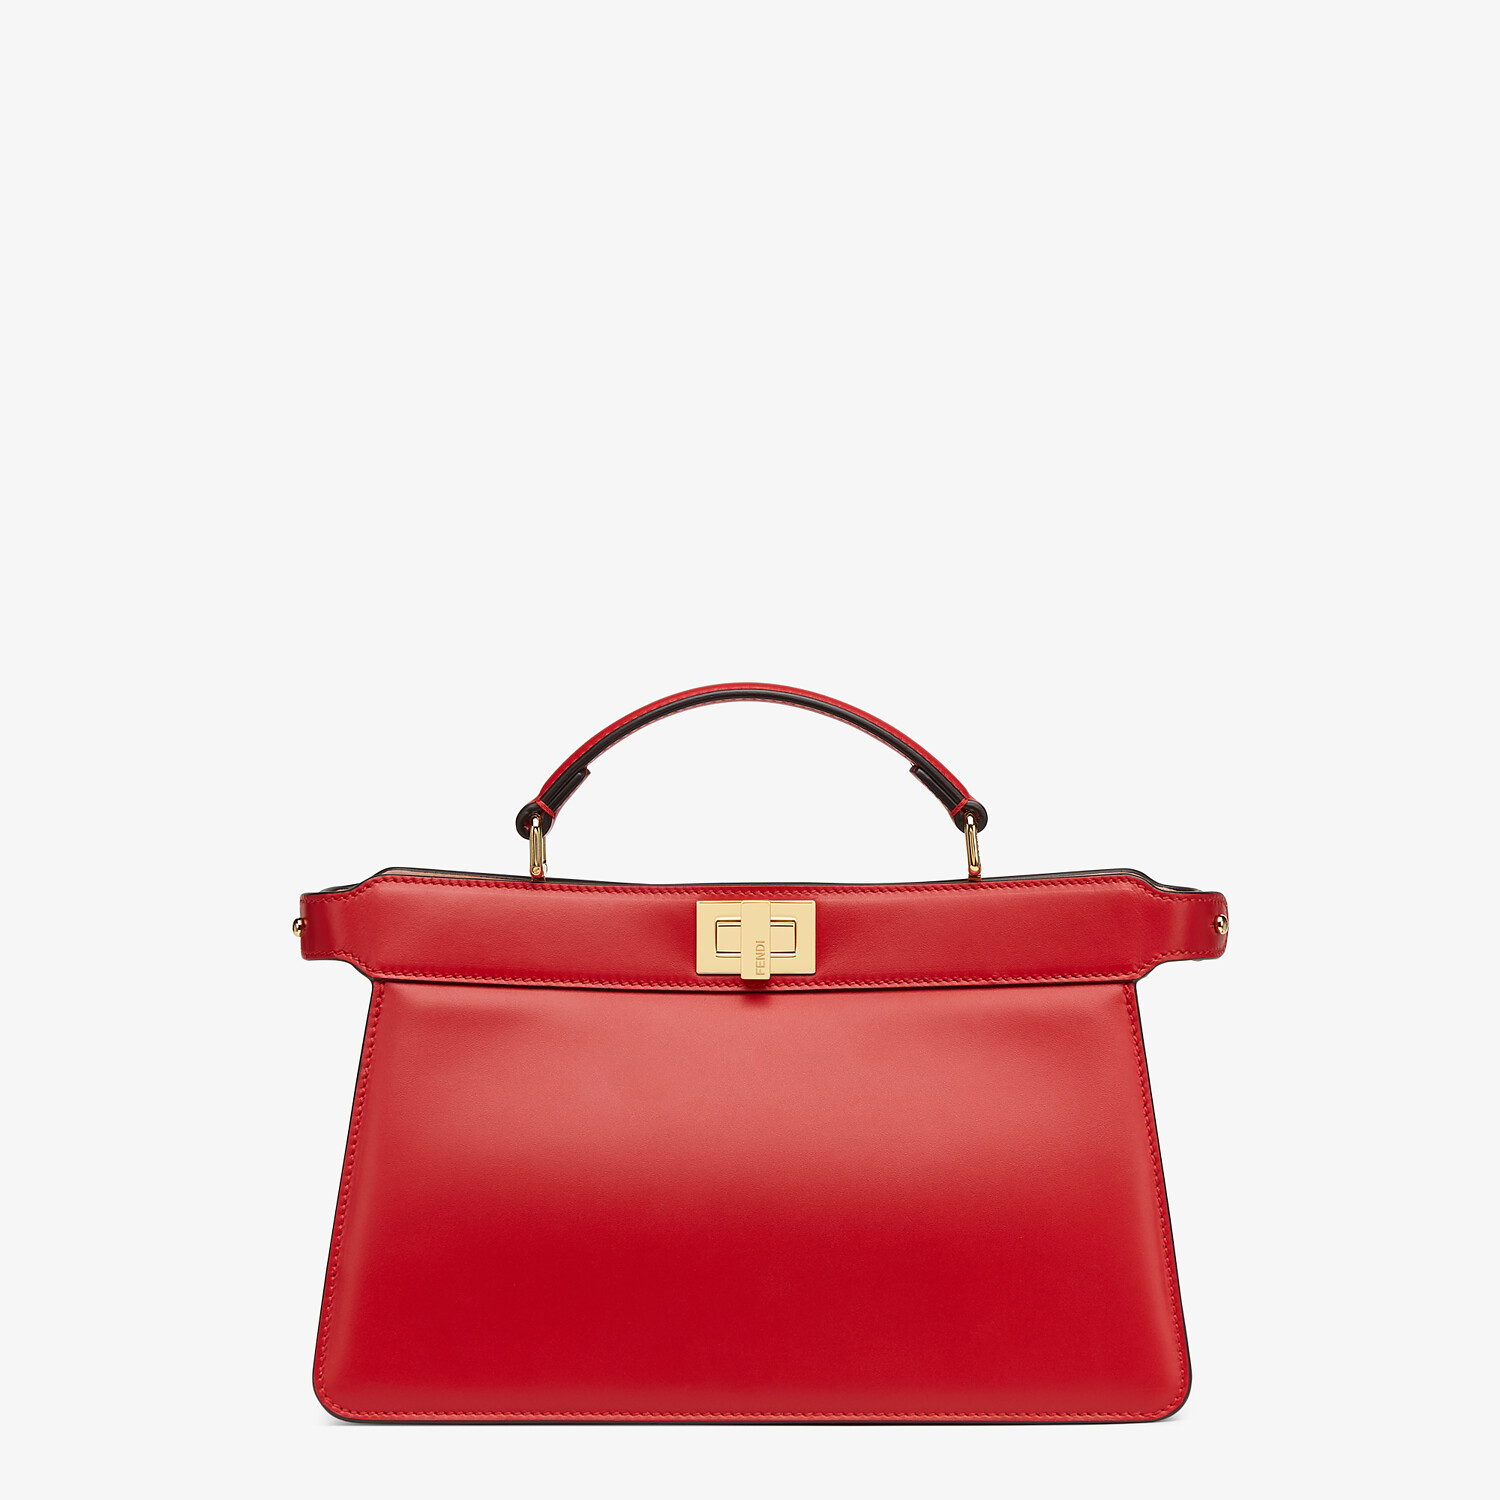 FENDI PEEKABOO ISEEU EAST-WEST - Red leather bag - view 1 detail